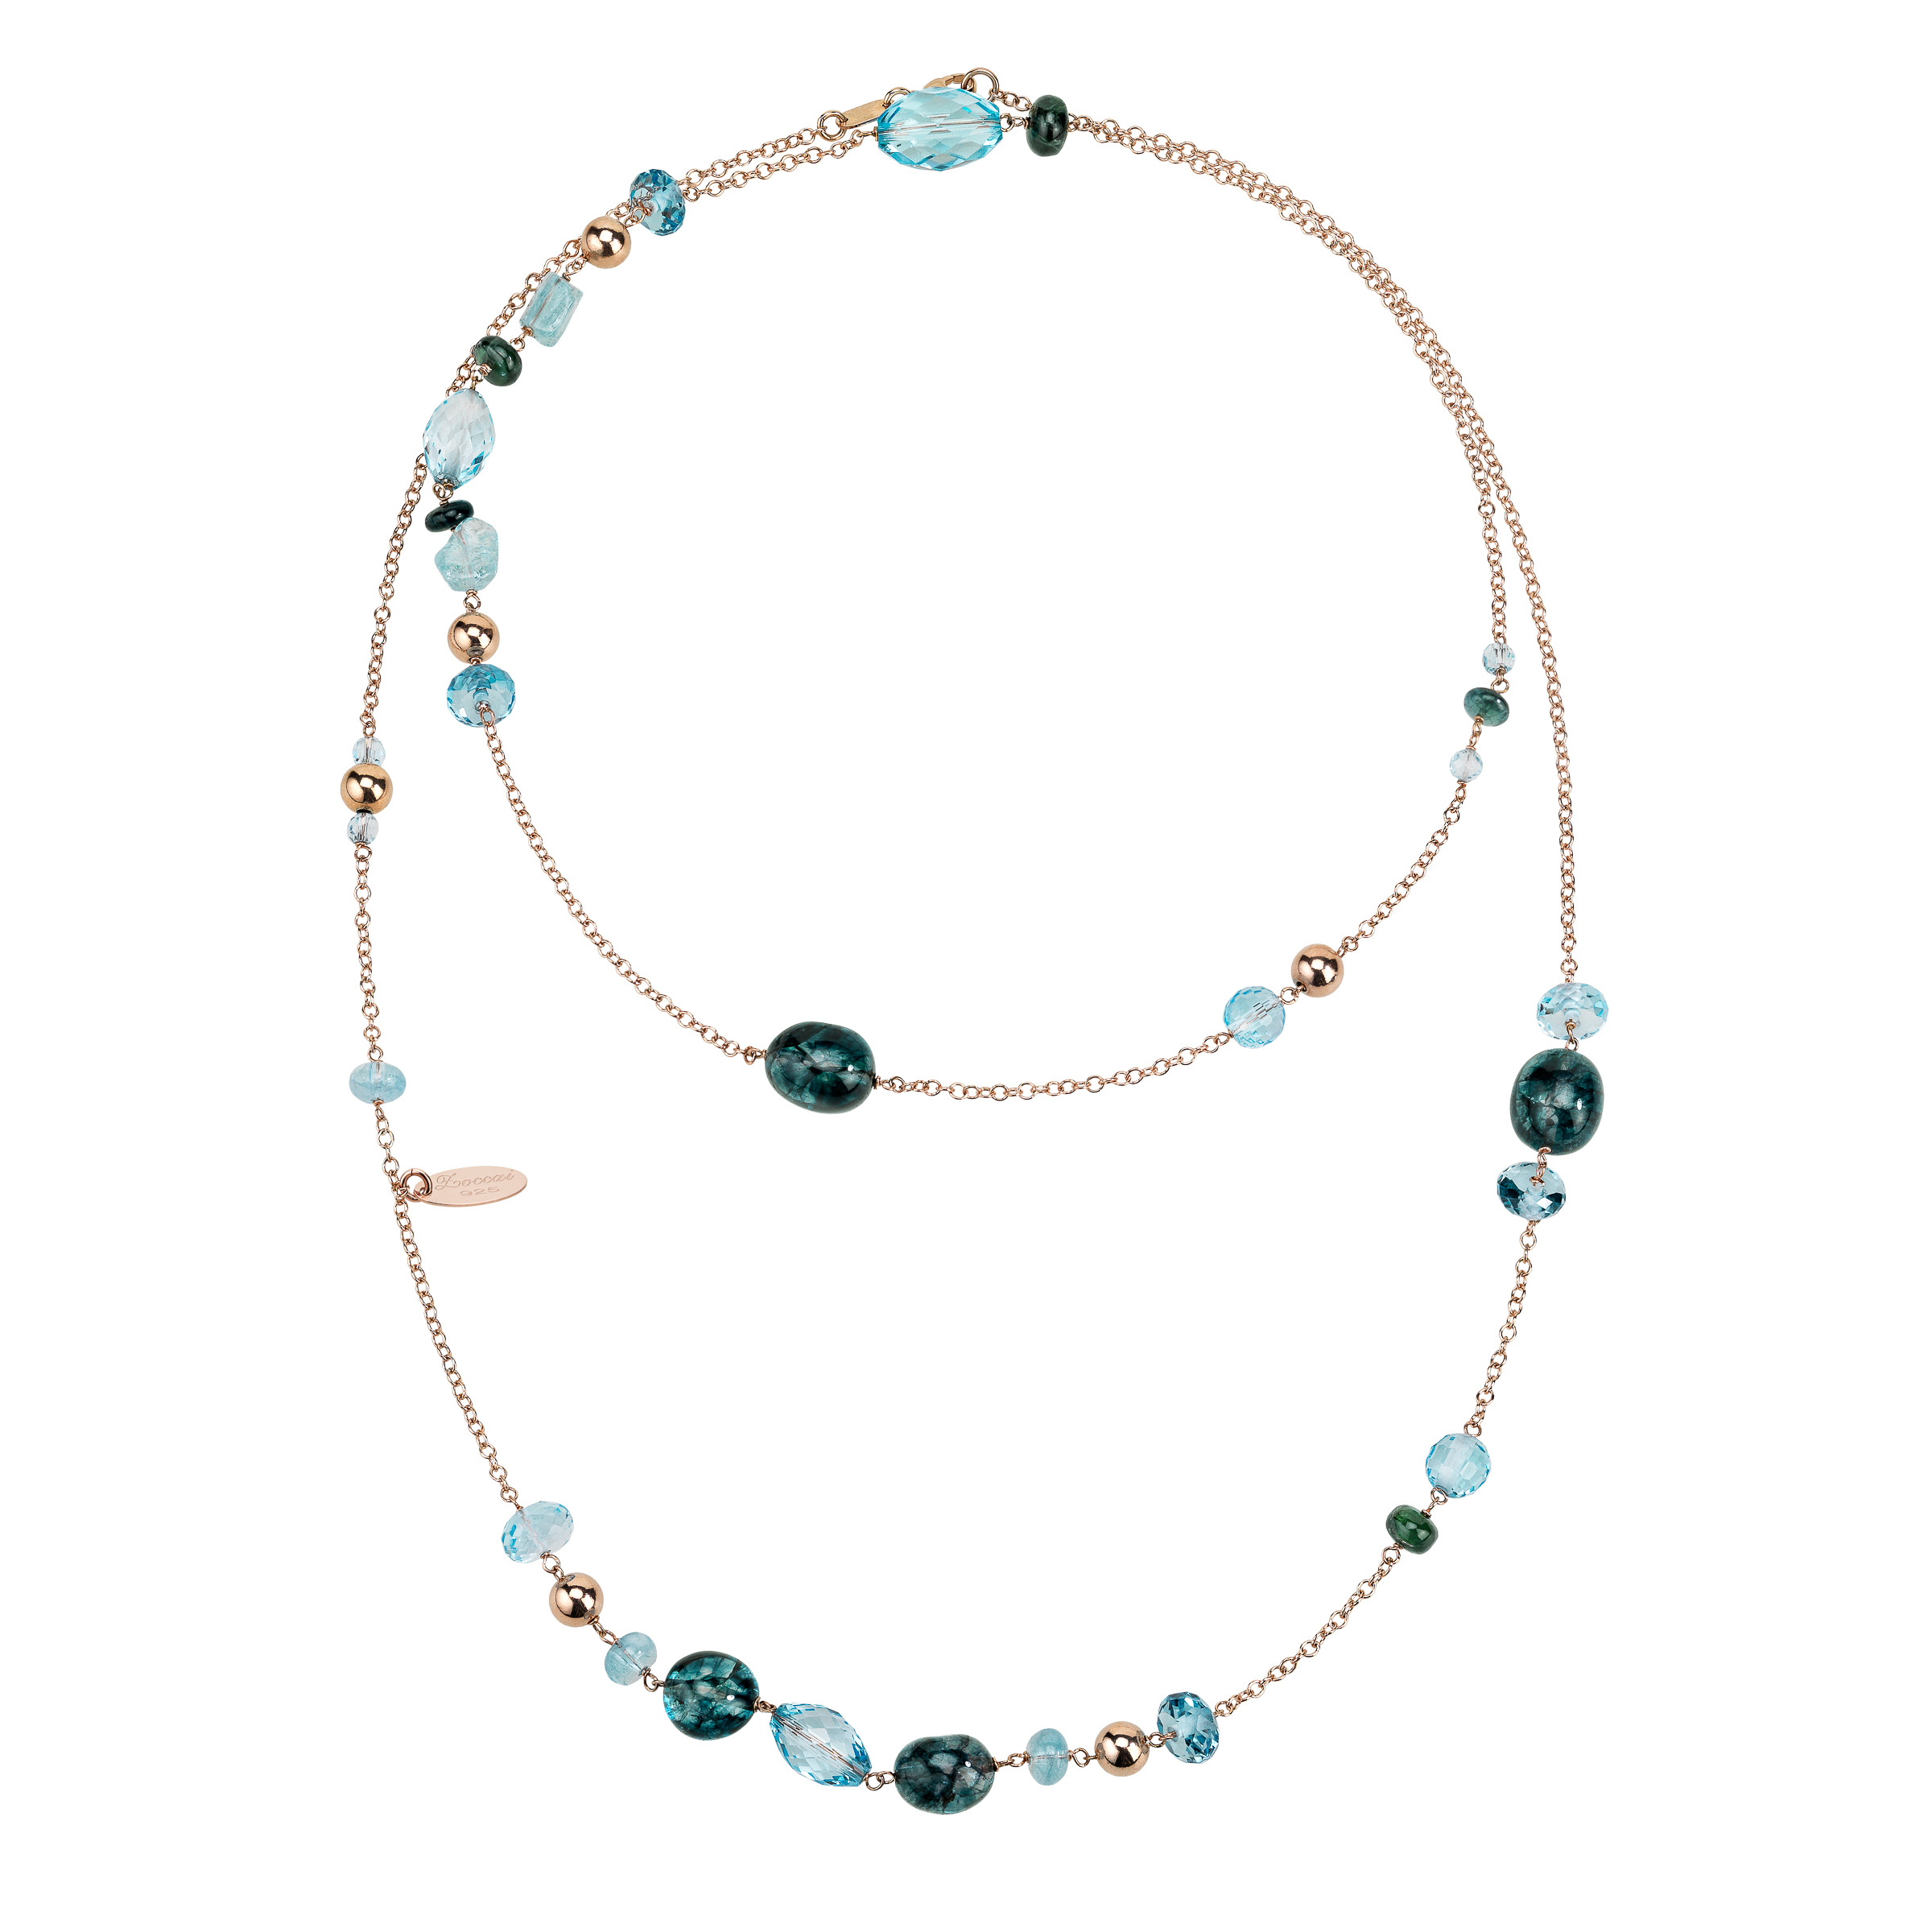 Zoccai 925 Blue Quartz & Blue Topaz Necklace in Rose Gold-Toned Sterling Silver by Richline Group